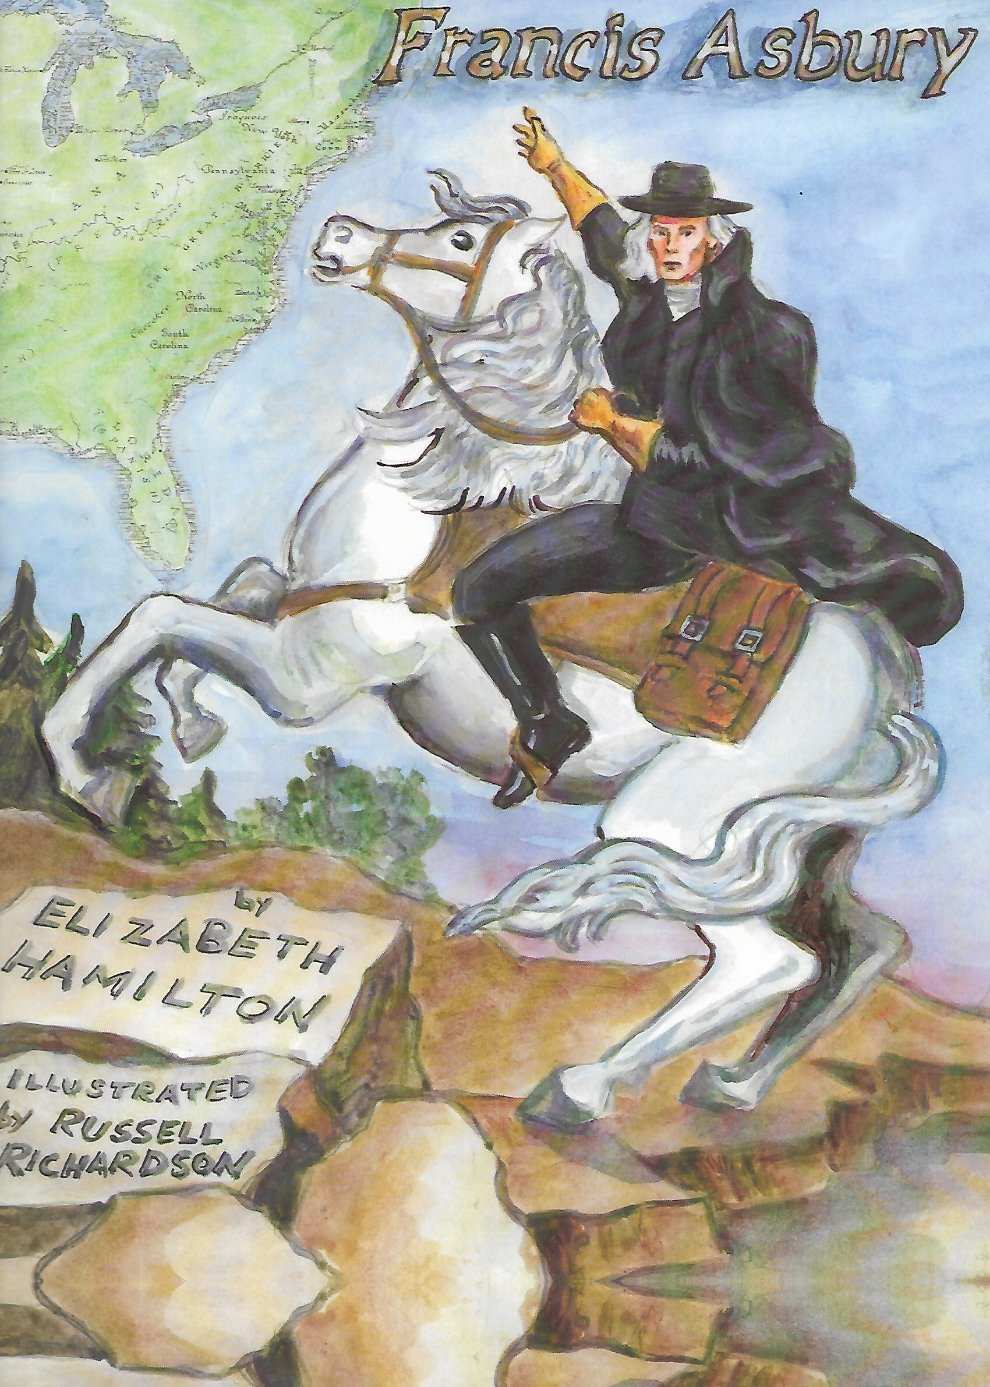 Francis Asbury Illustrated Story Cover